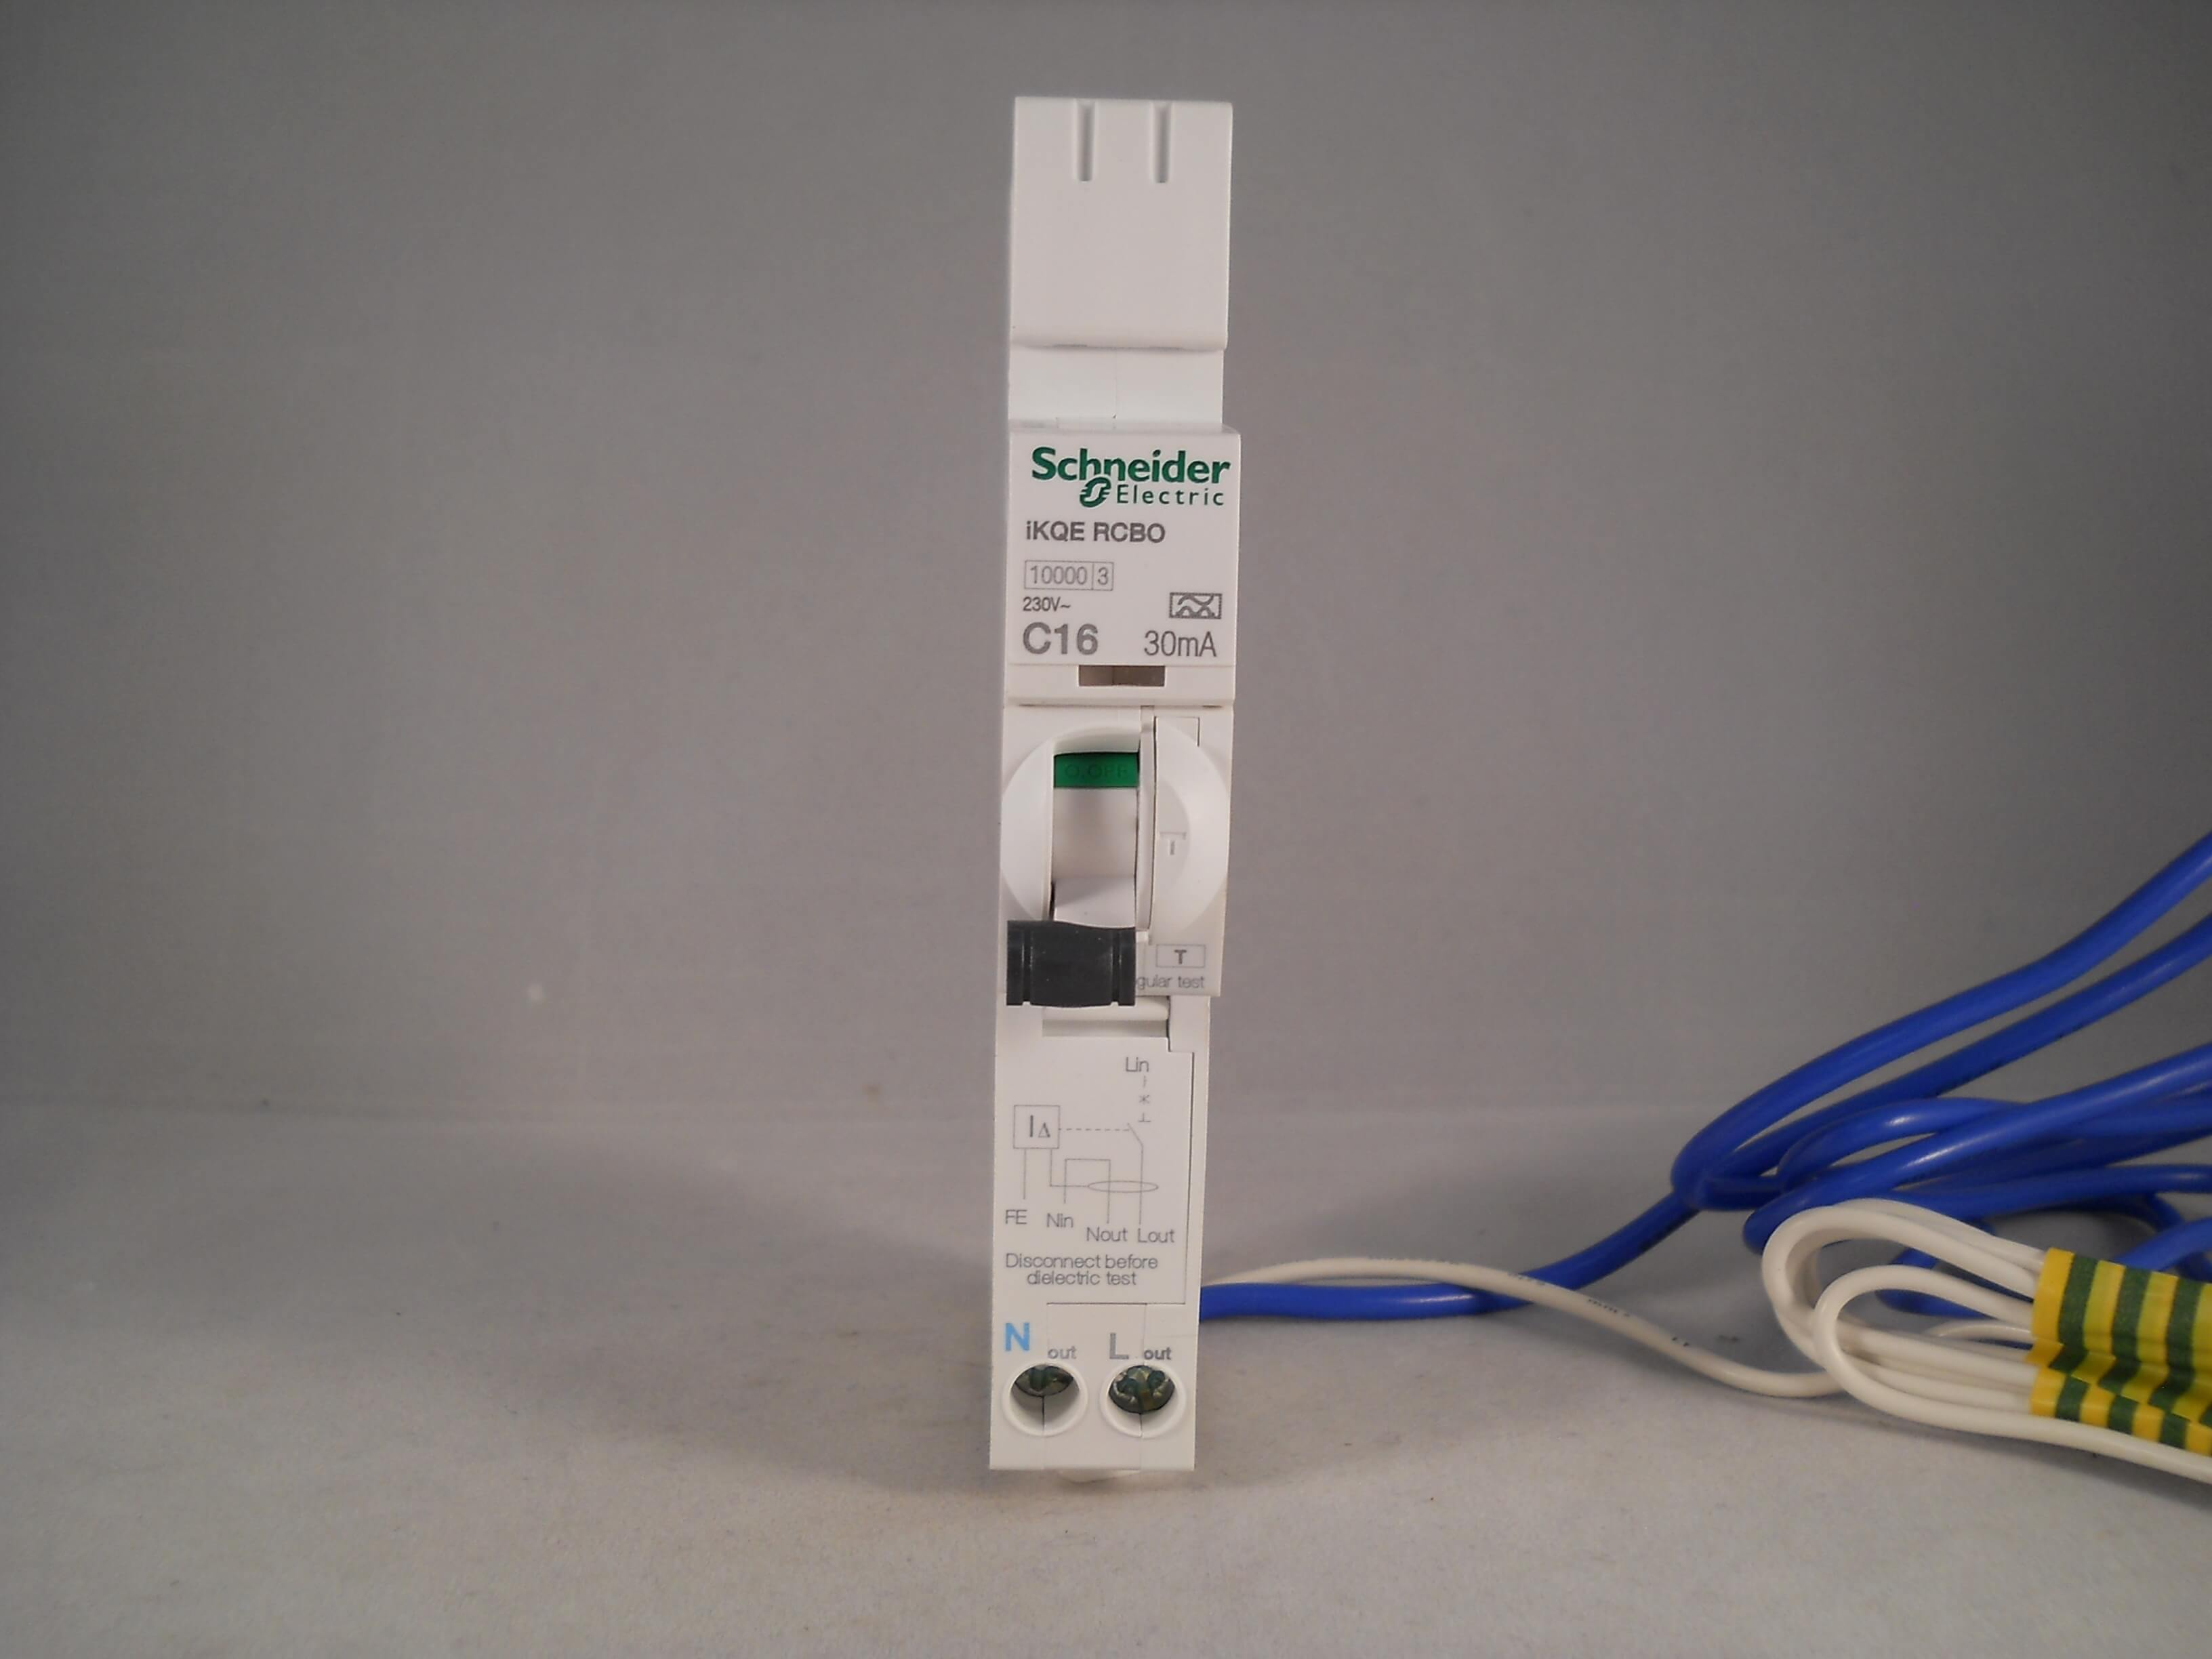 schneider rcbo 16 amp 30ma type c 16a c16 ikqe kqe acti9 square d see116c03 new